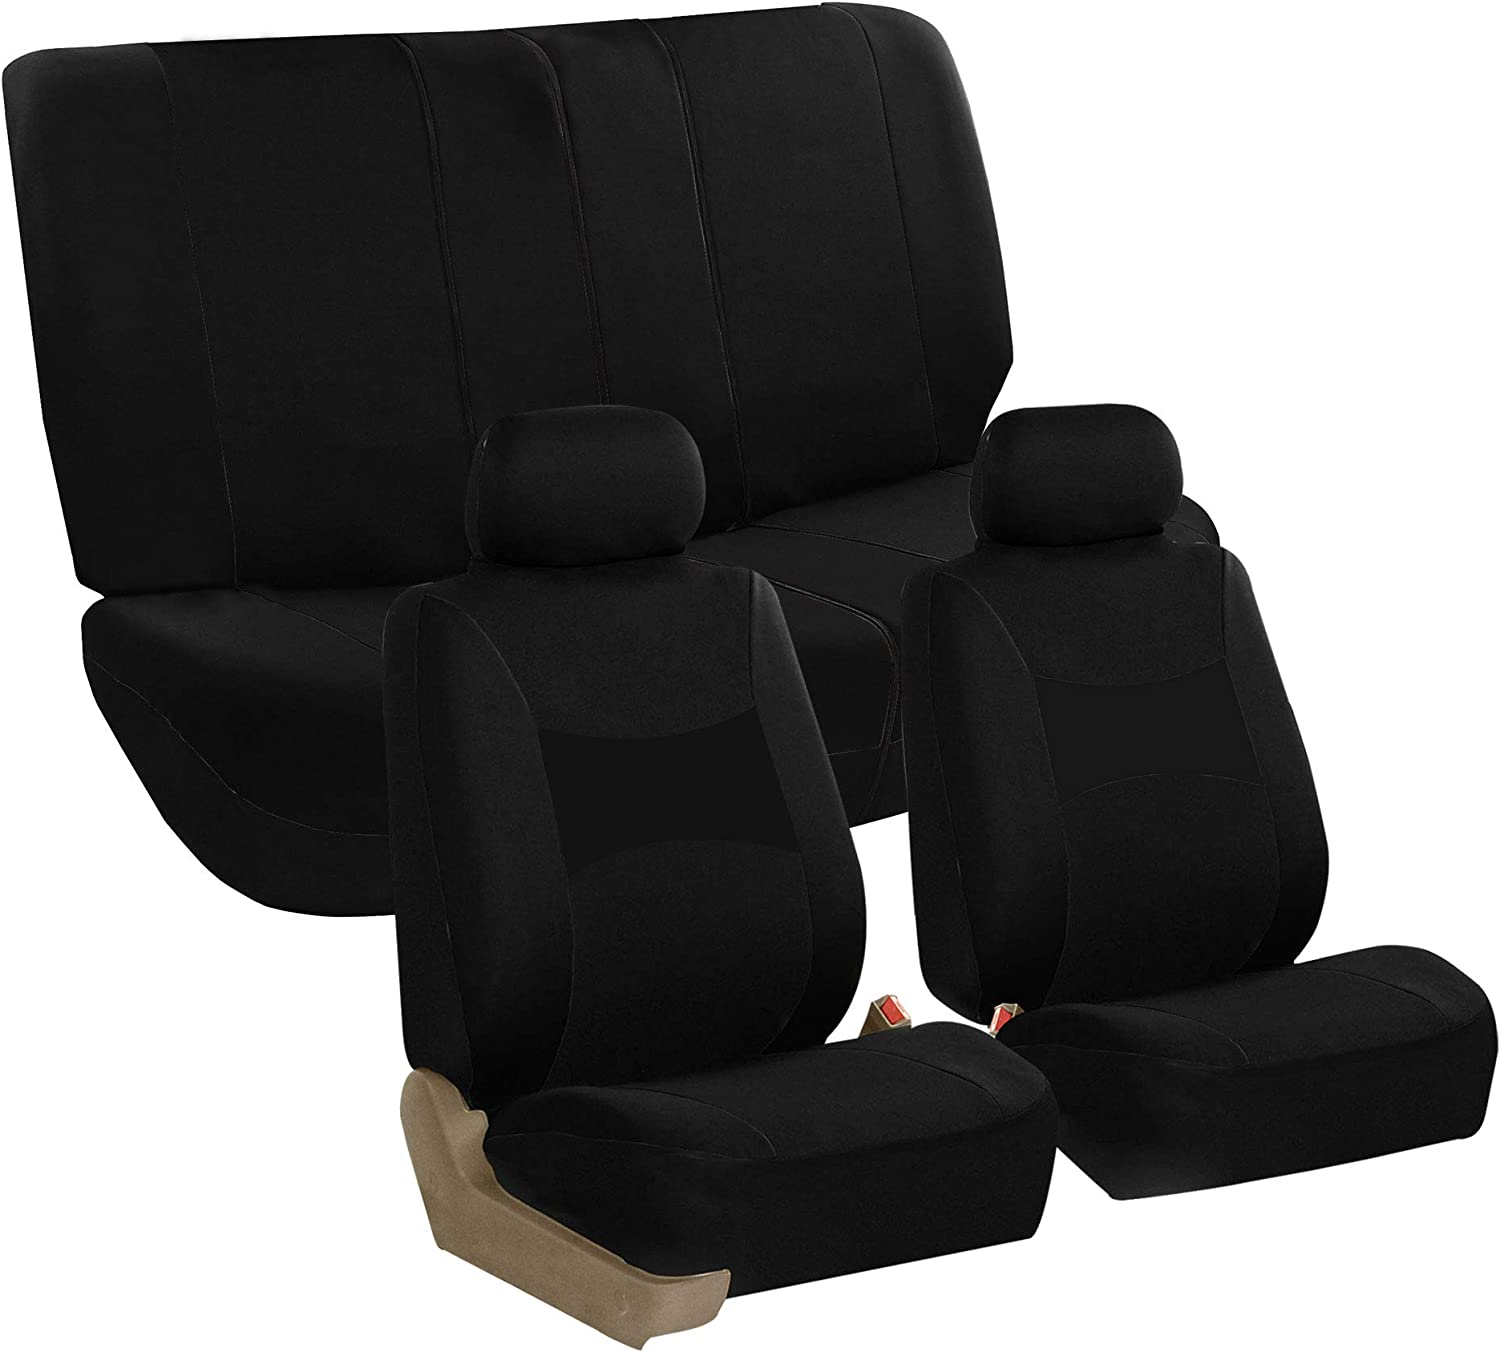 FH Group FB030112 Light & Breezy Cloth Full Set Car Seat Covers (Airbag & Split Ready) Solid Black - Fit Most Car, Truck, SUV, or Van